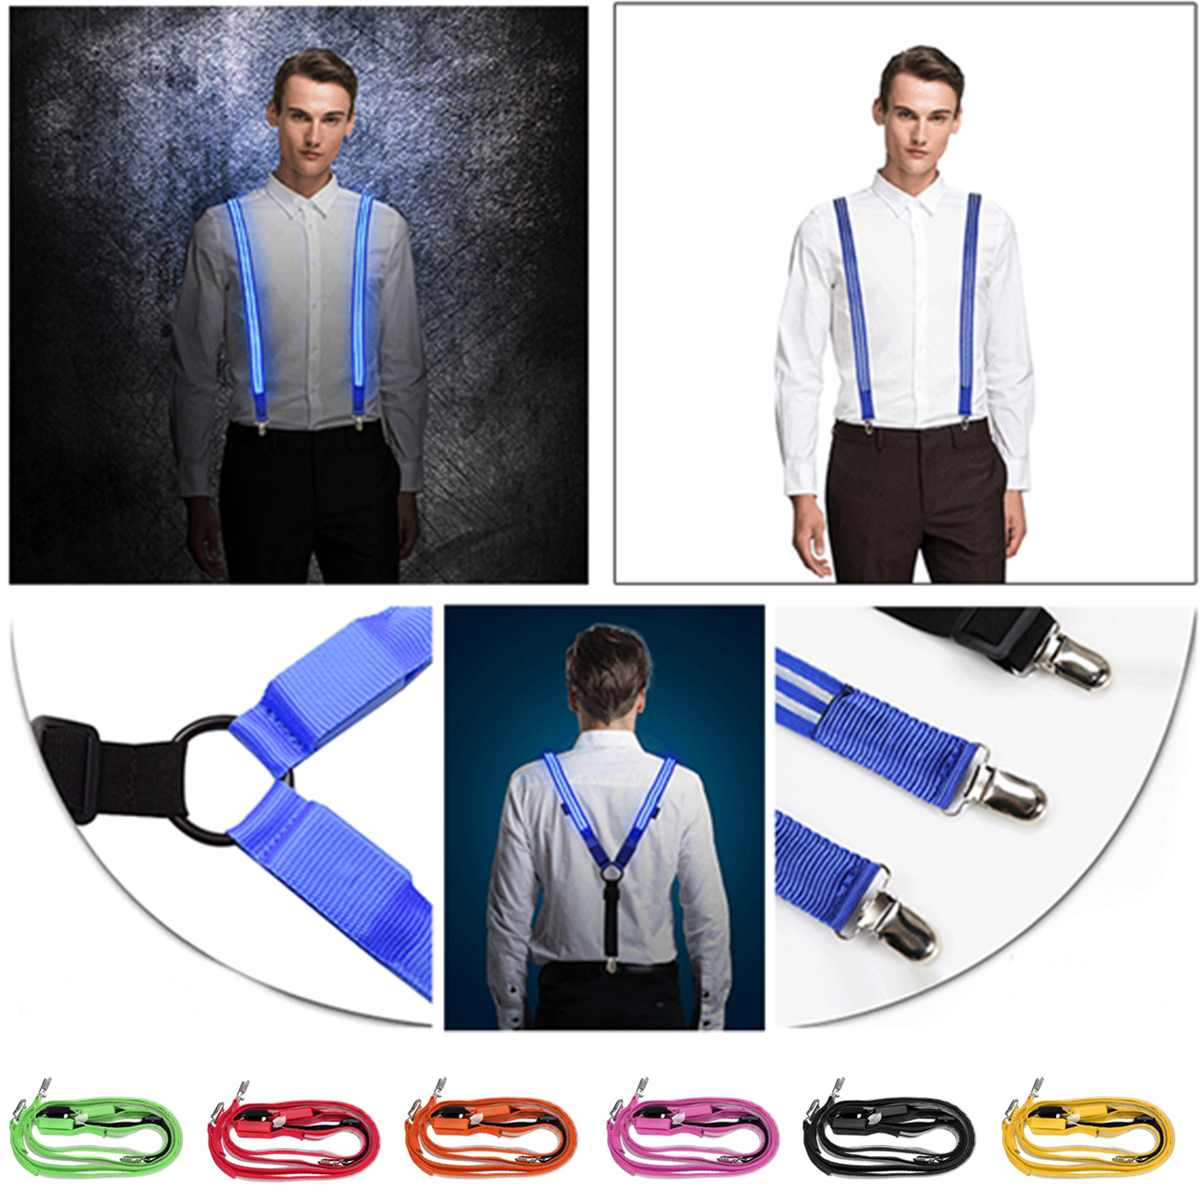 Printed LED Suspenders Unisex Flashing Trousers Male Suspenders  Outdoor Night Cycling Running Riding Multi Color Party Gift